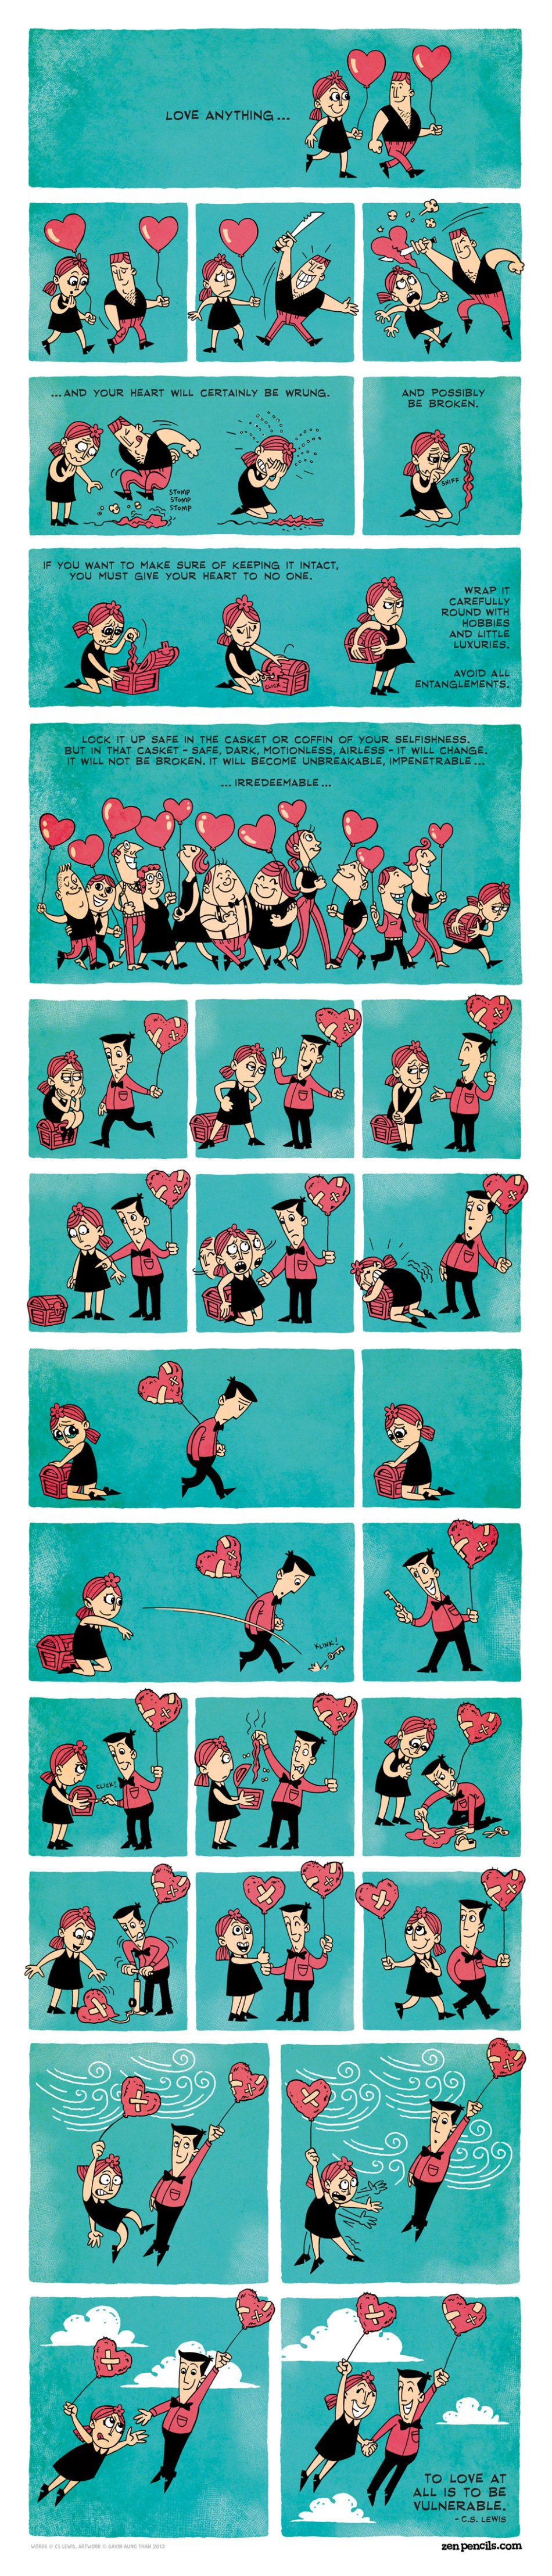 zenpencils-toloveanything-hearthobbies-cslewis